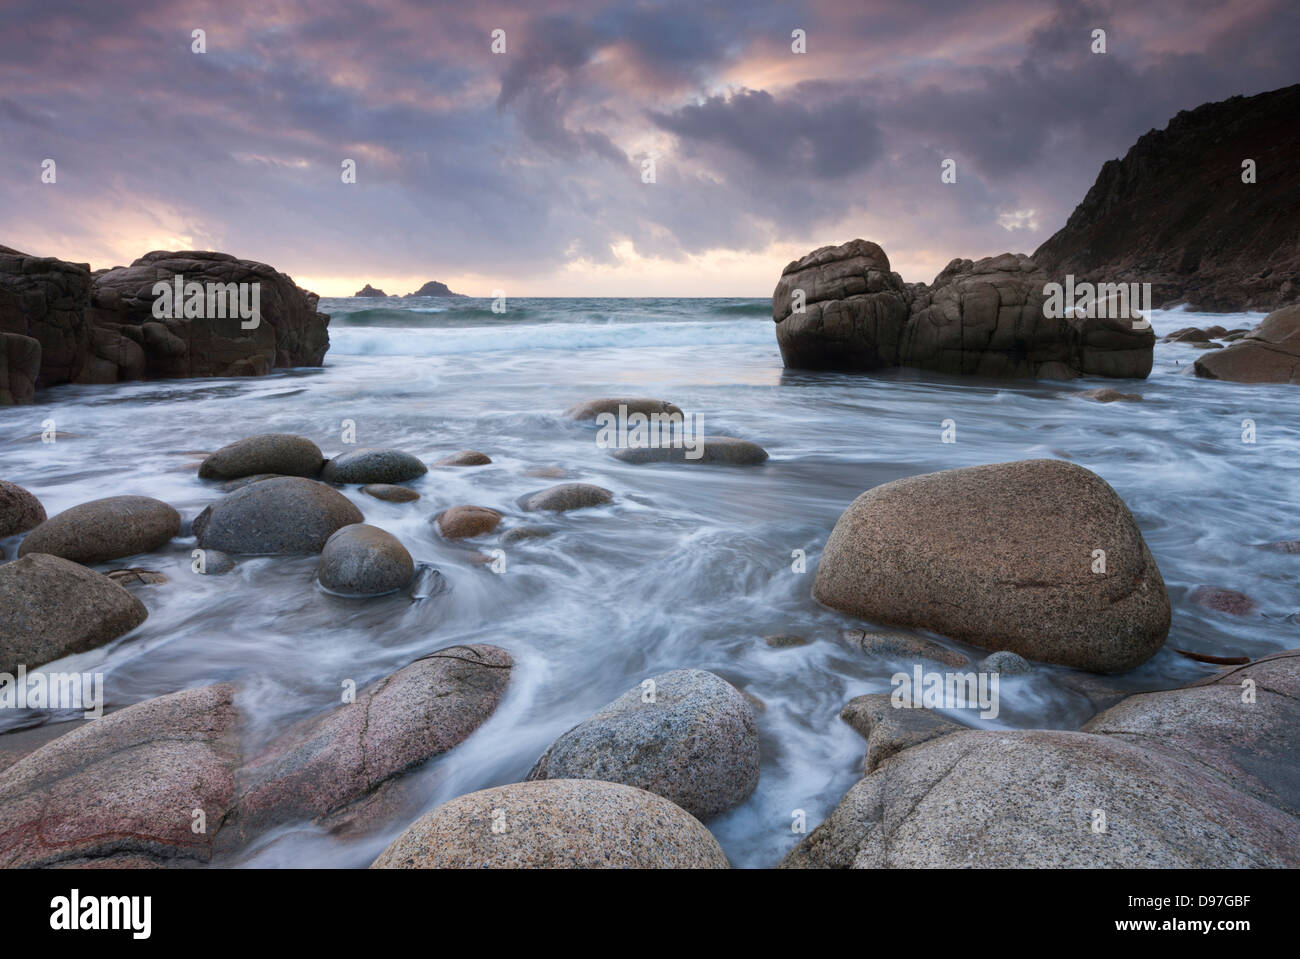 Sunset on the rocky shores of Porth Nanven, near St Just, Cornwall, England. - Stock Image